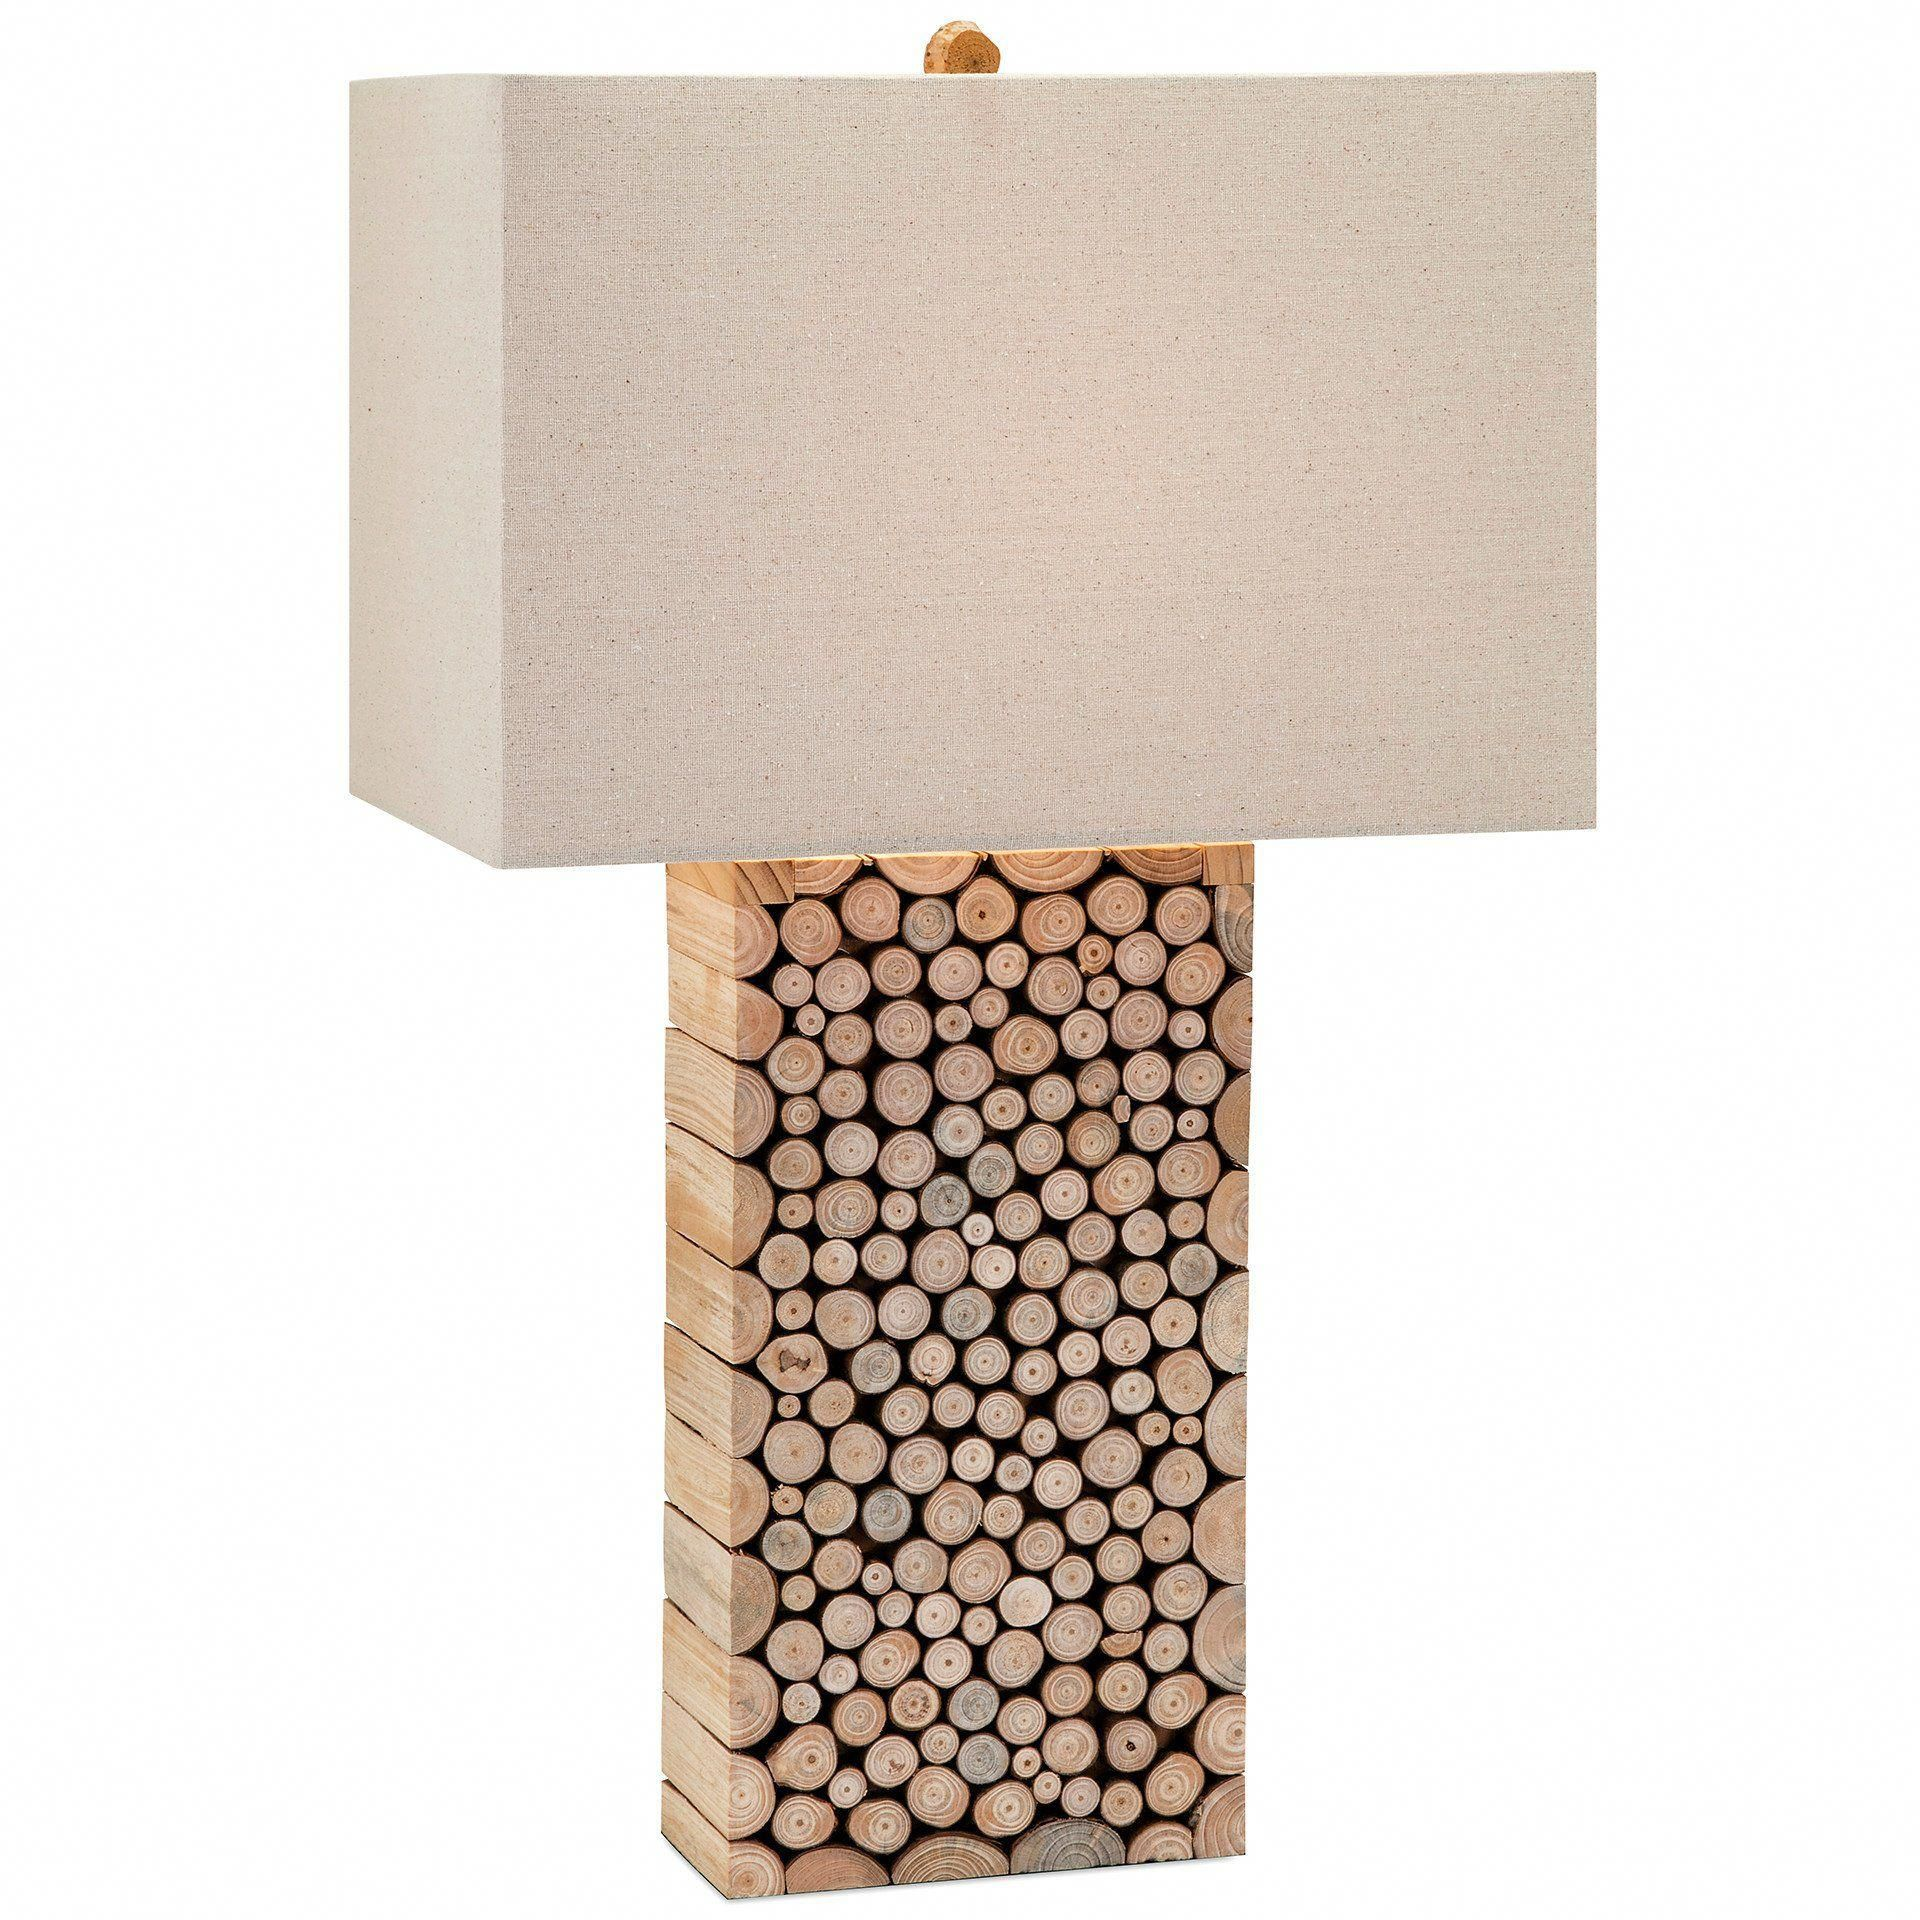 Clearance Floor Lamps T3lamps Rusticlamp Wooden Table Lamps